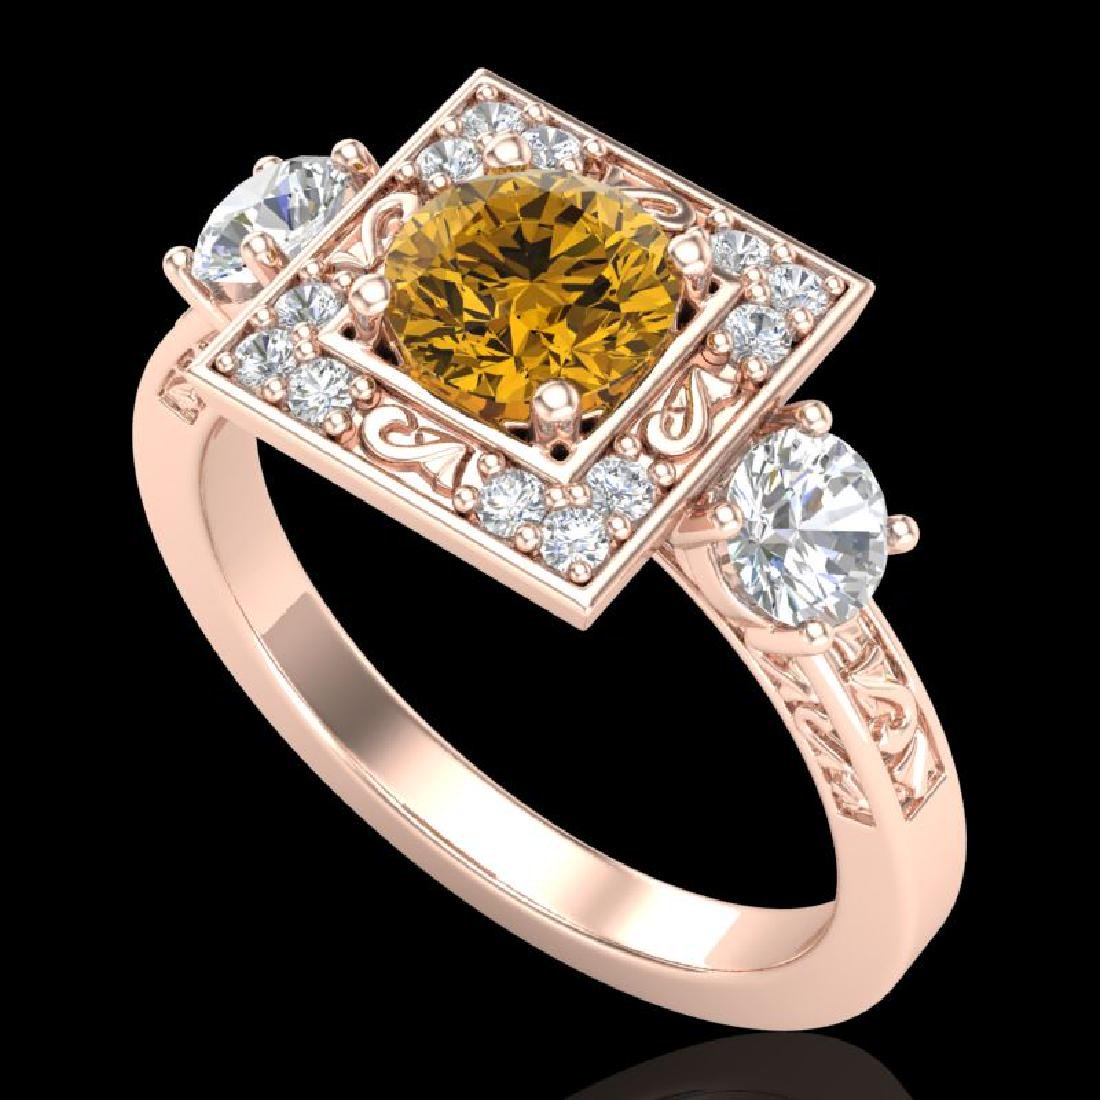 1.55 CTW Intense Fancy Yellow Diamond Art Deco 3 Stone